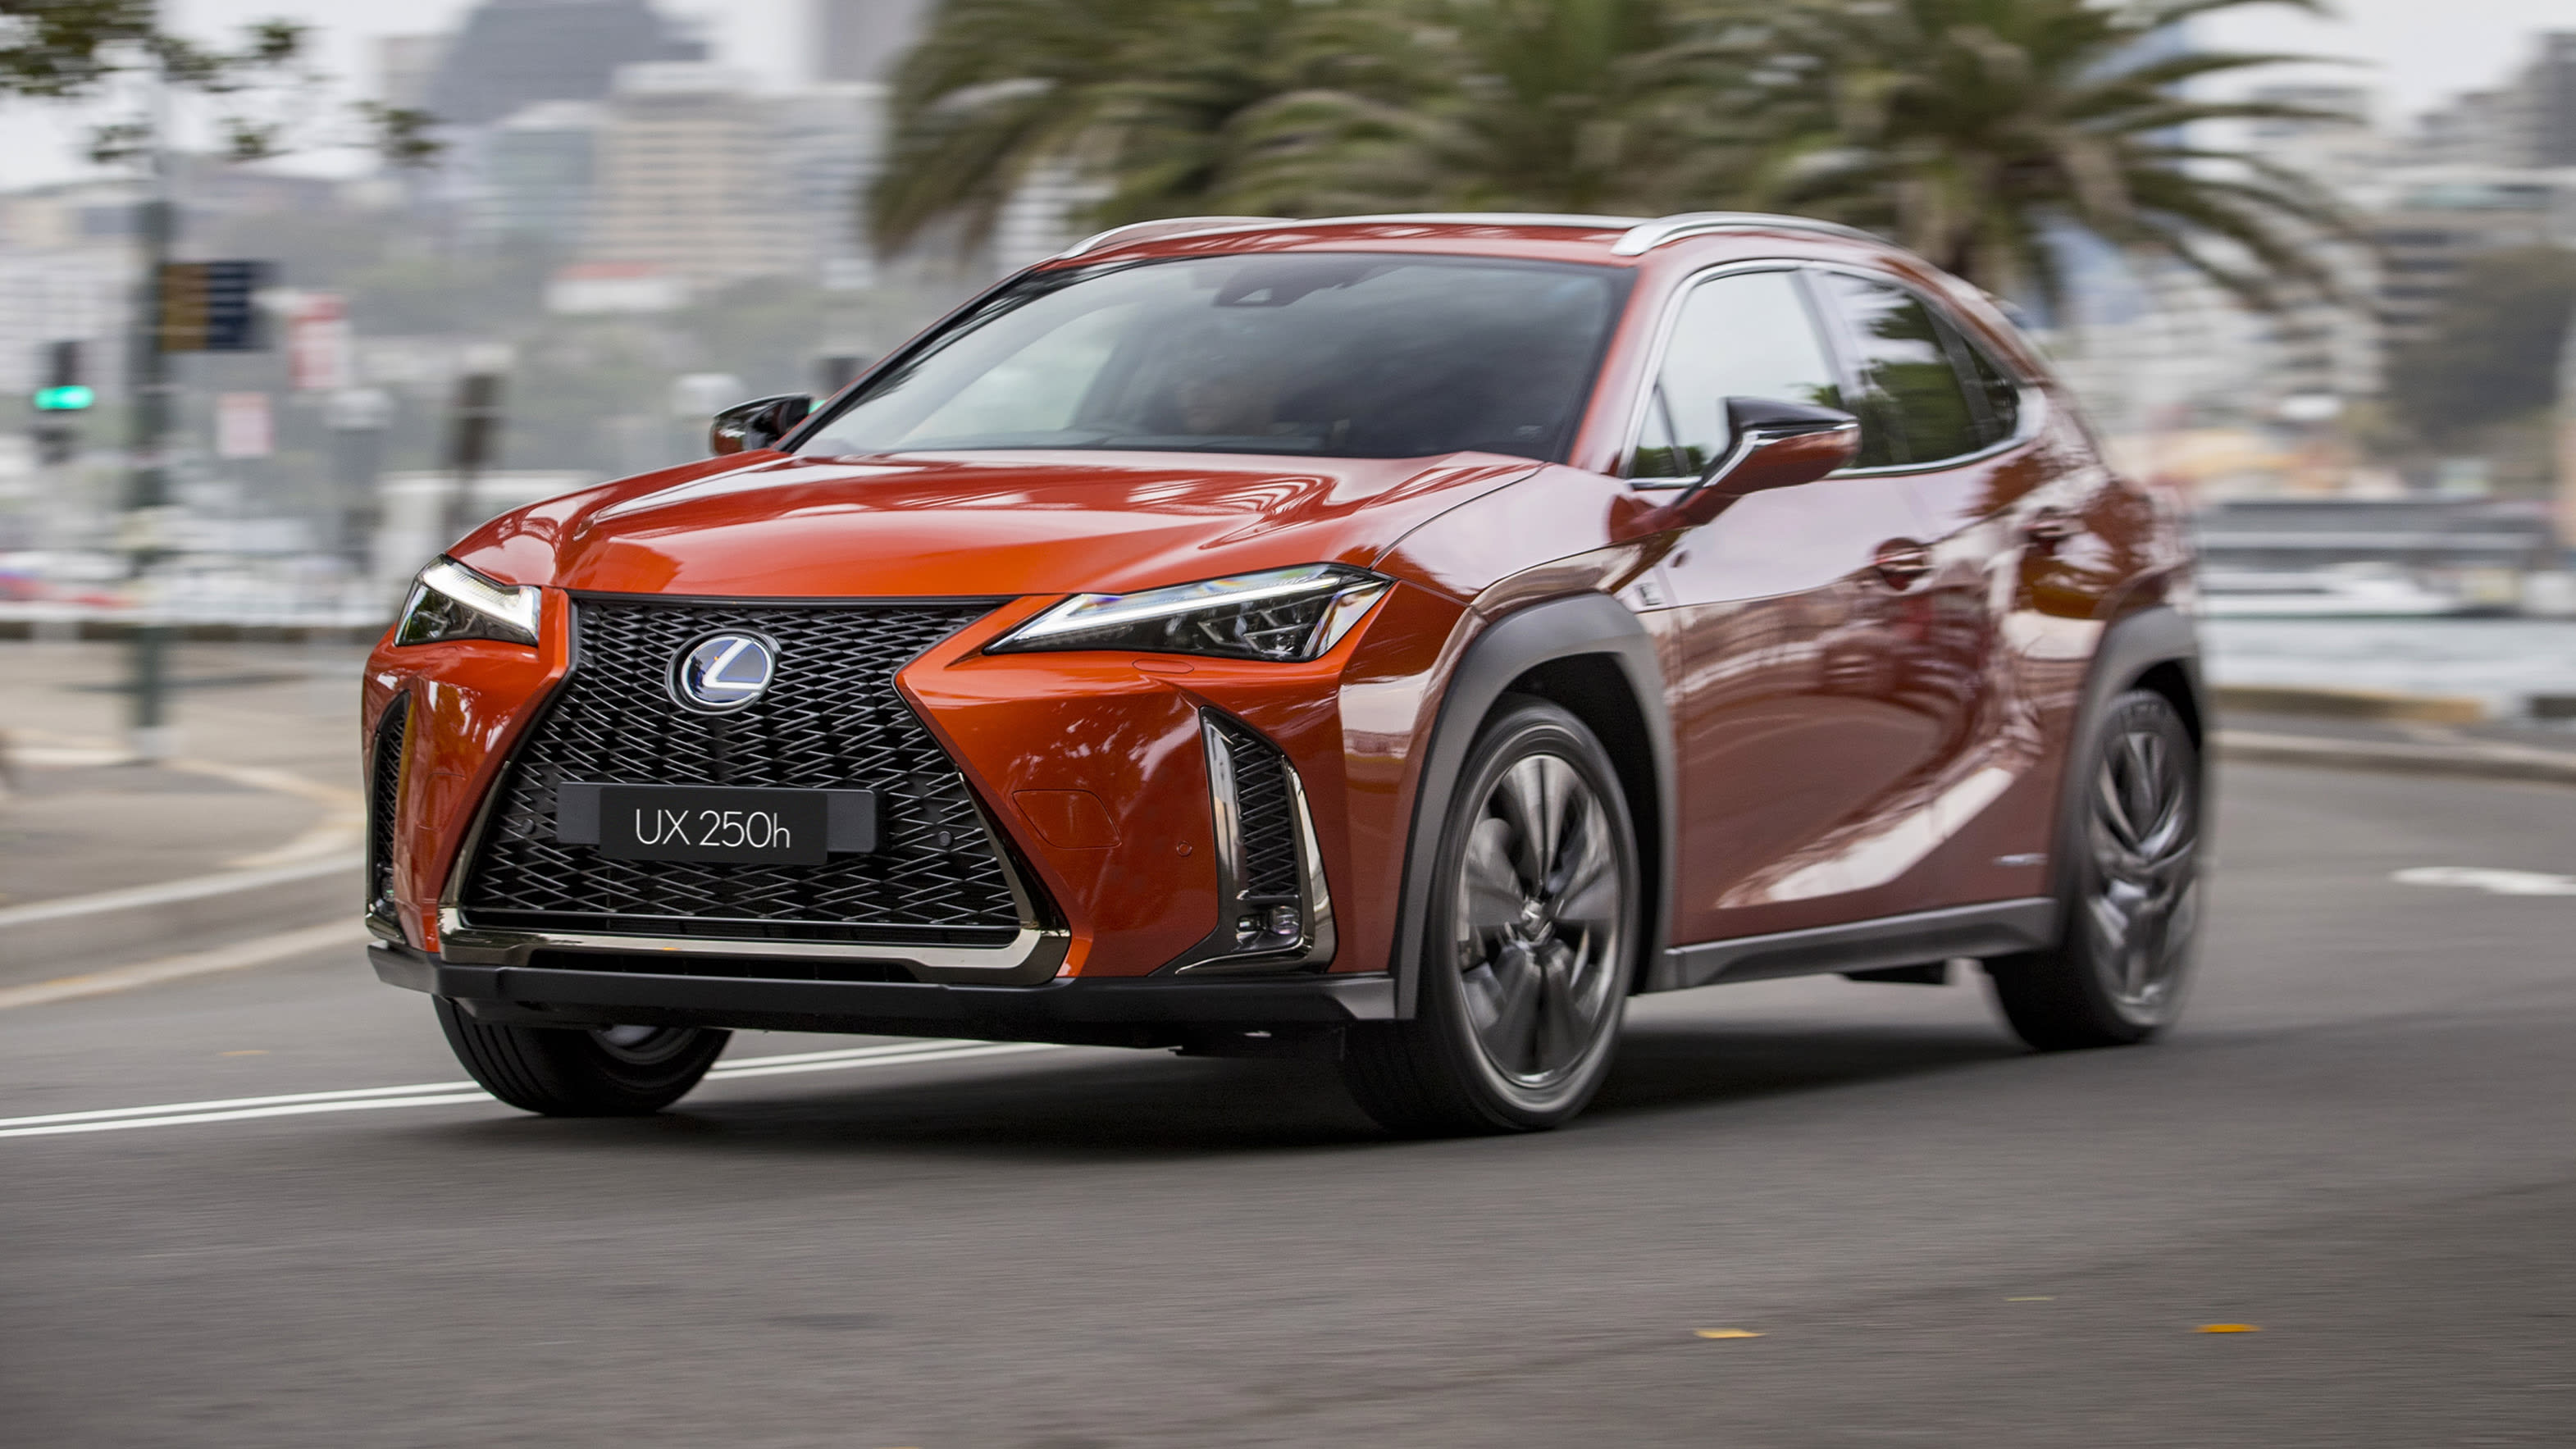 2021 Lexus Ux Price And Specs Price Cuts And Upgraded Tech Caradvice